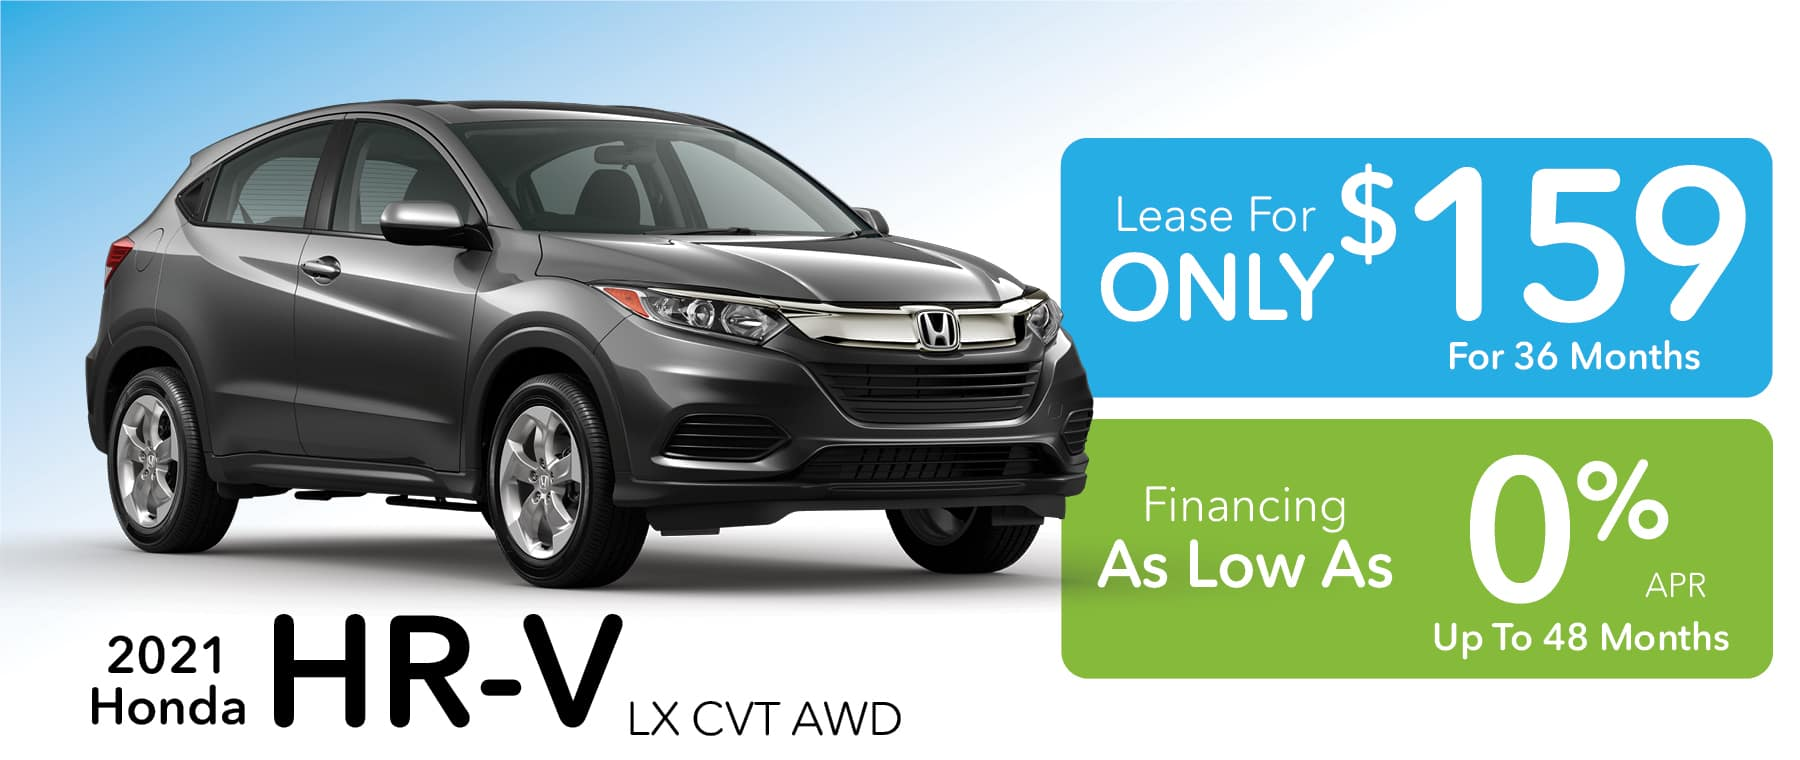 0% APR for up to 48 months!